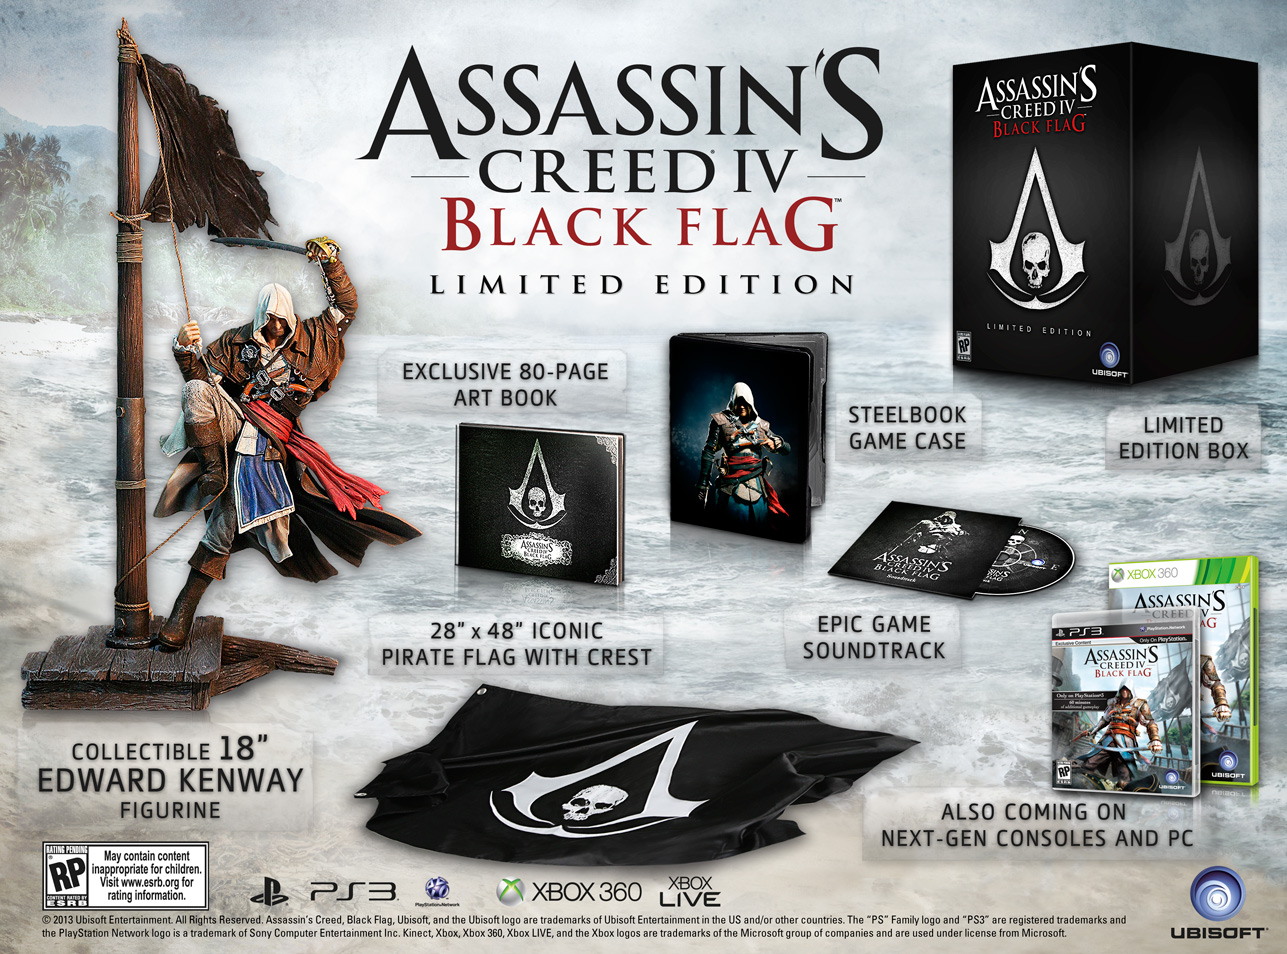 ac4bflimitededition